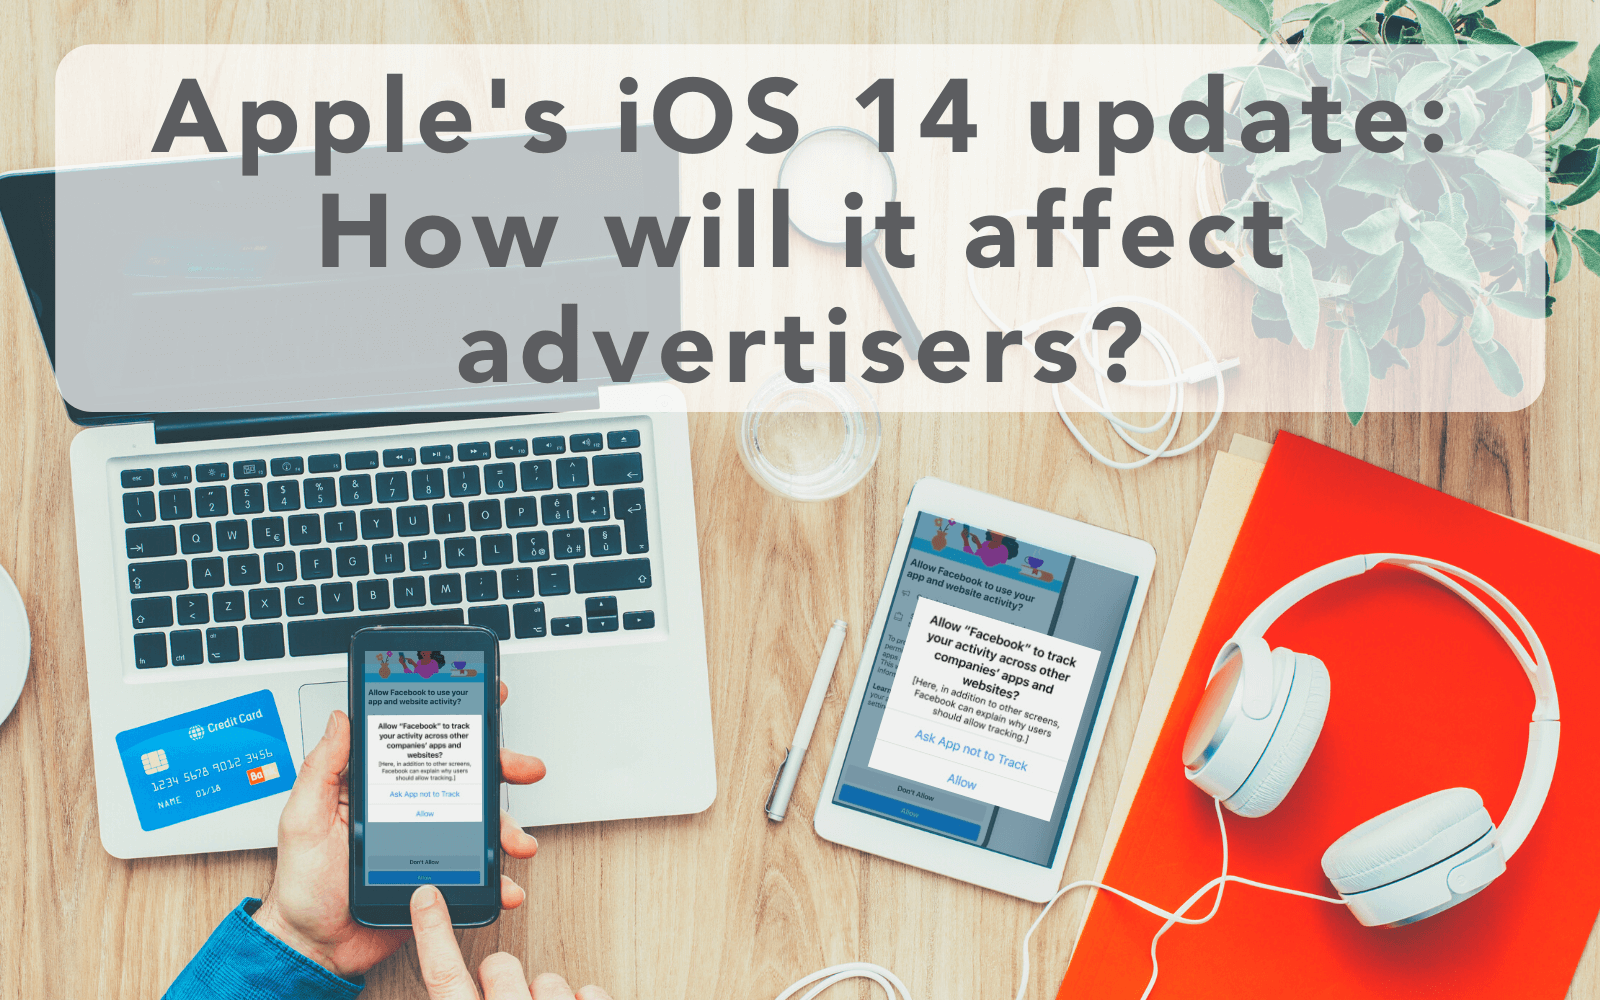 Apple's iOS 14 update ~ how will it affect advertisers in terms of facebook ads and reporting?